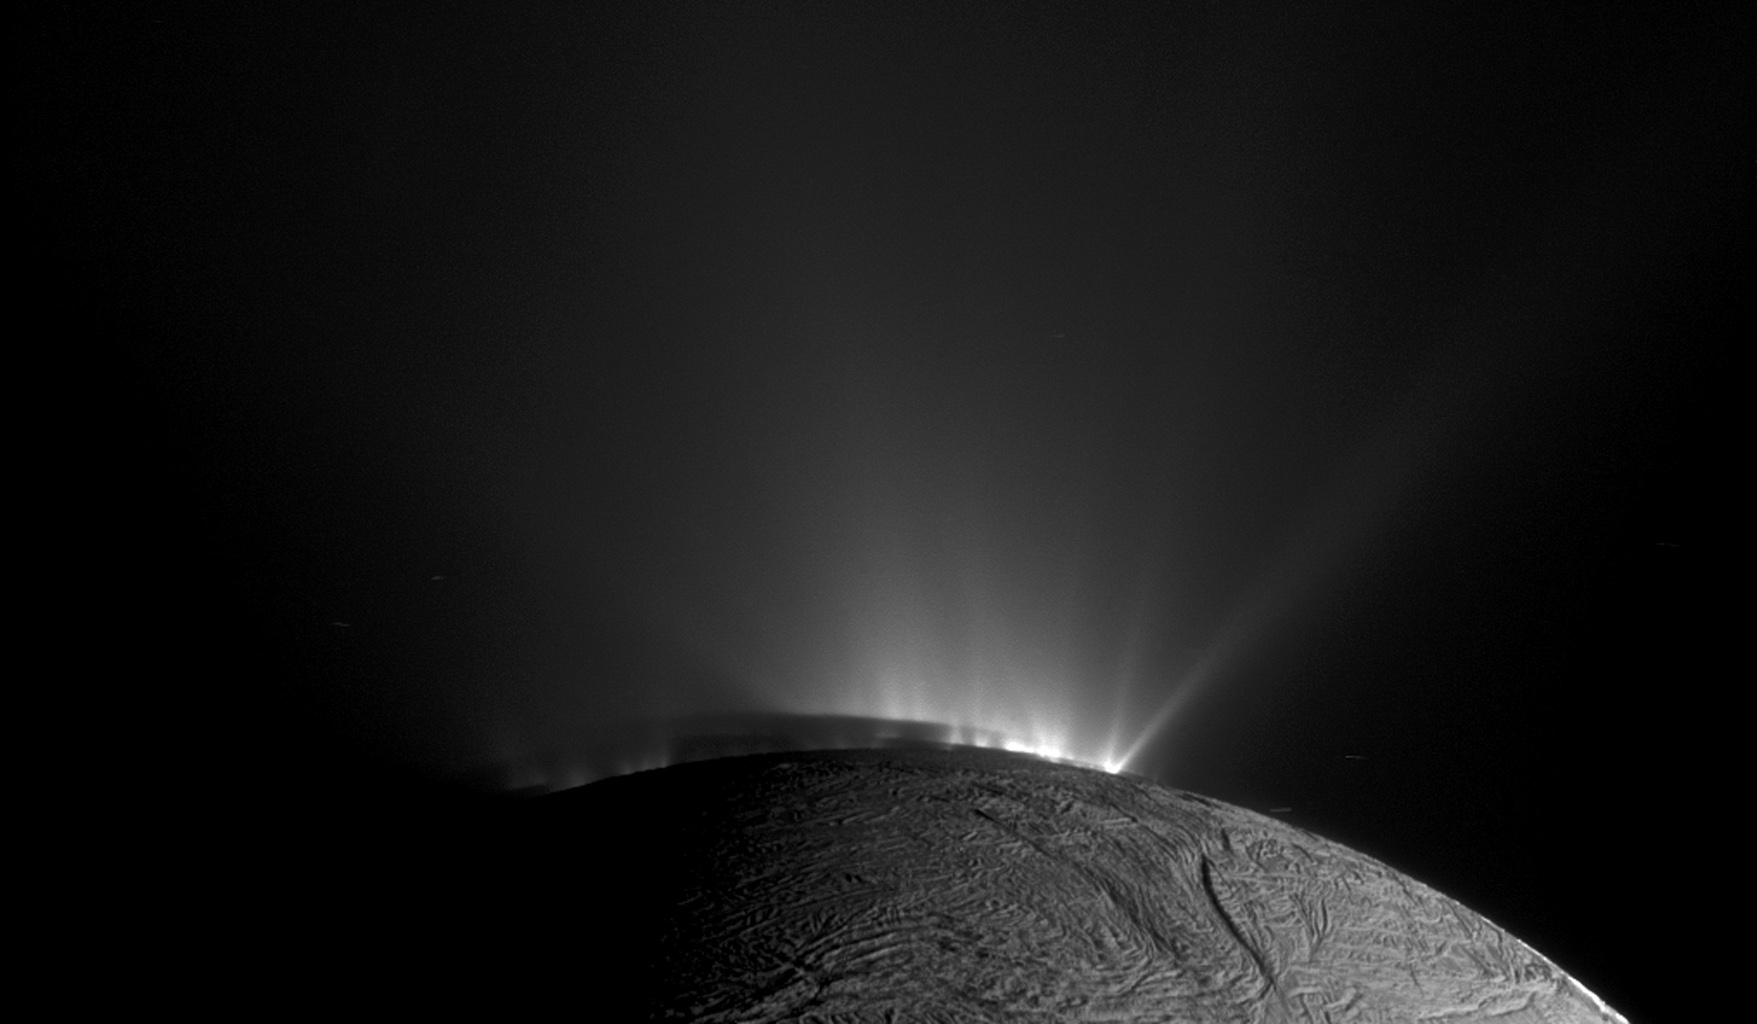 This image from NASA's Cassini spacecraft, one of those acquired in the survey conducted by the Cassini imaging science team of the geyser basin at the south pole of Enceladus, was taken as Cassini was looking across the moon's south pole.